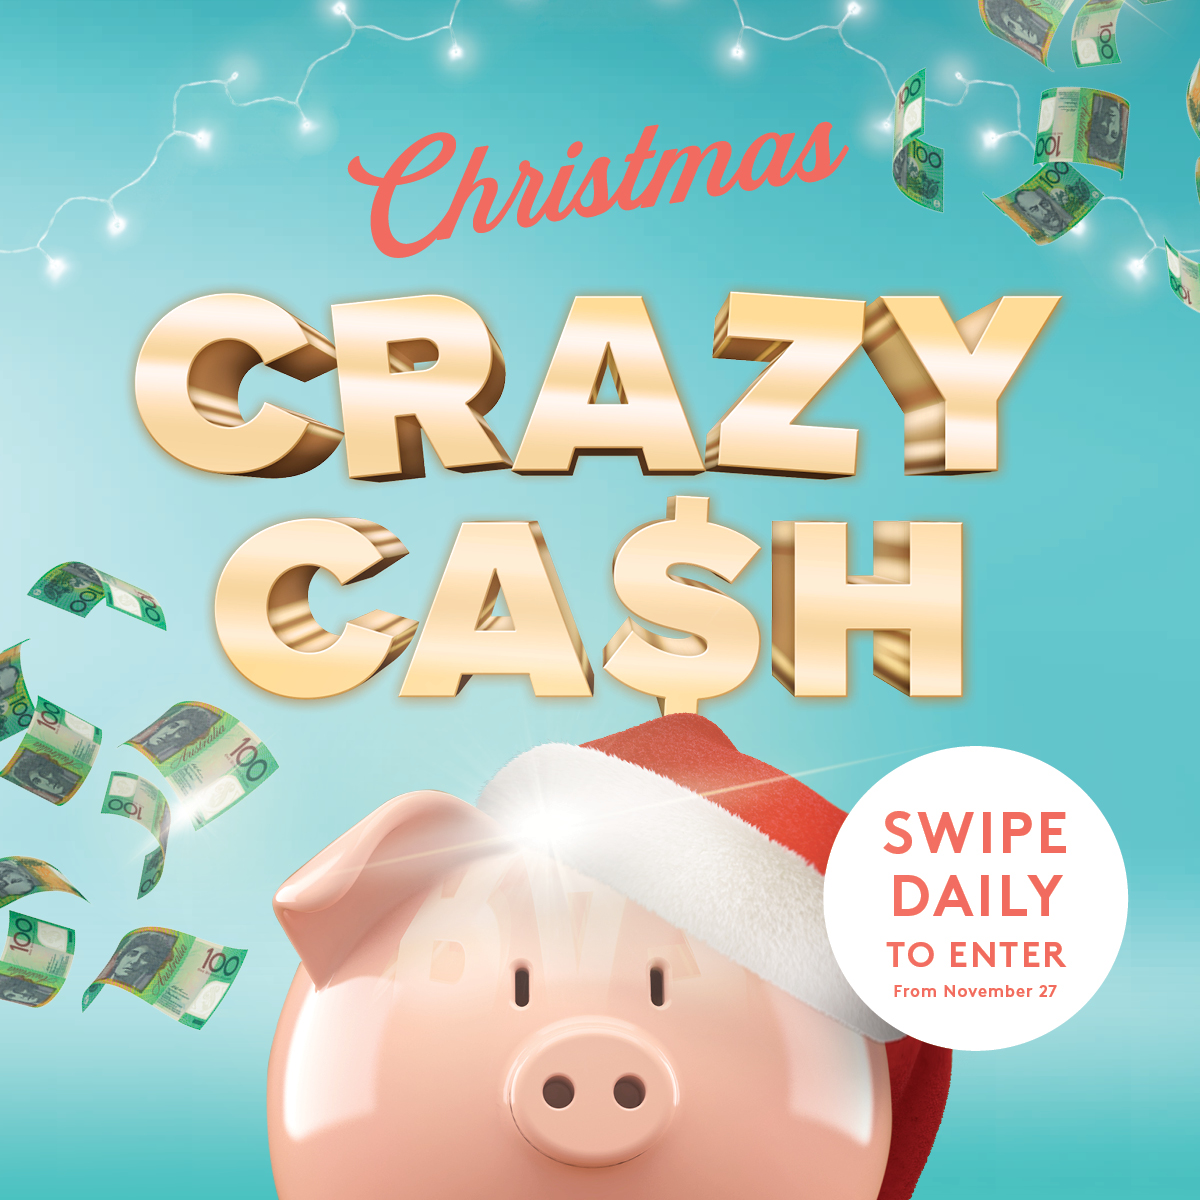 Crazy Cash is BACK! Your chance to win $1,000 cash every week! PLUS $3,000 cash on Christmas Eve!